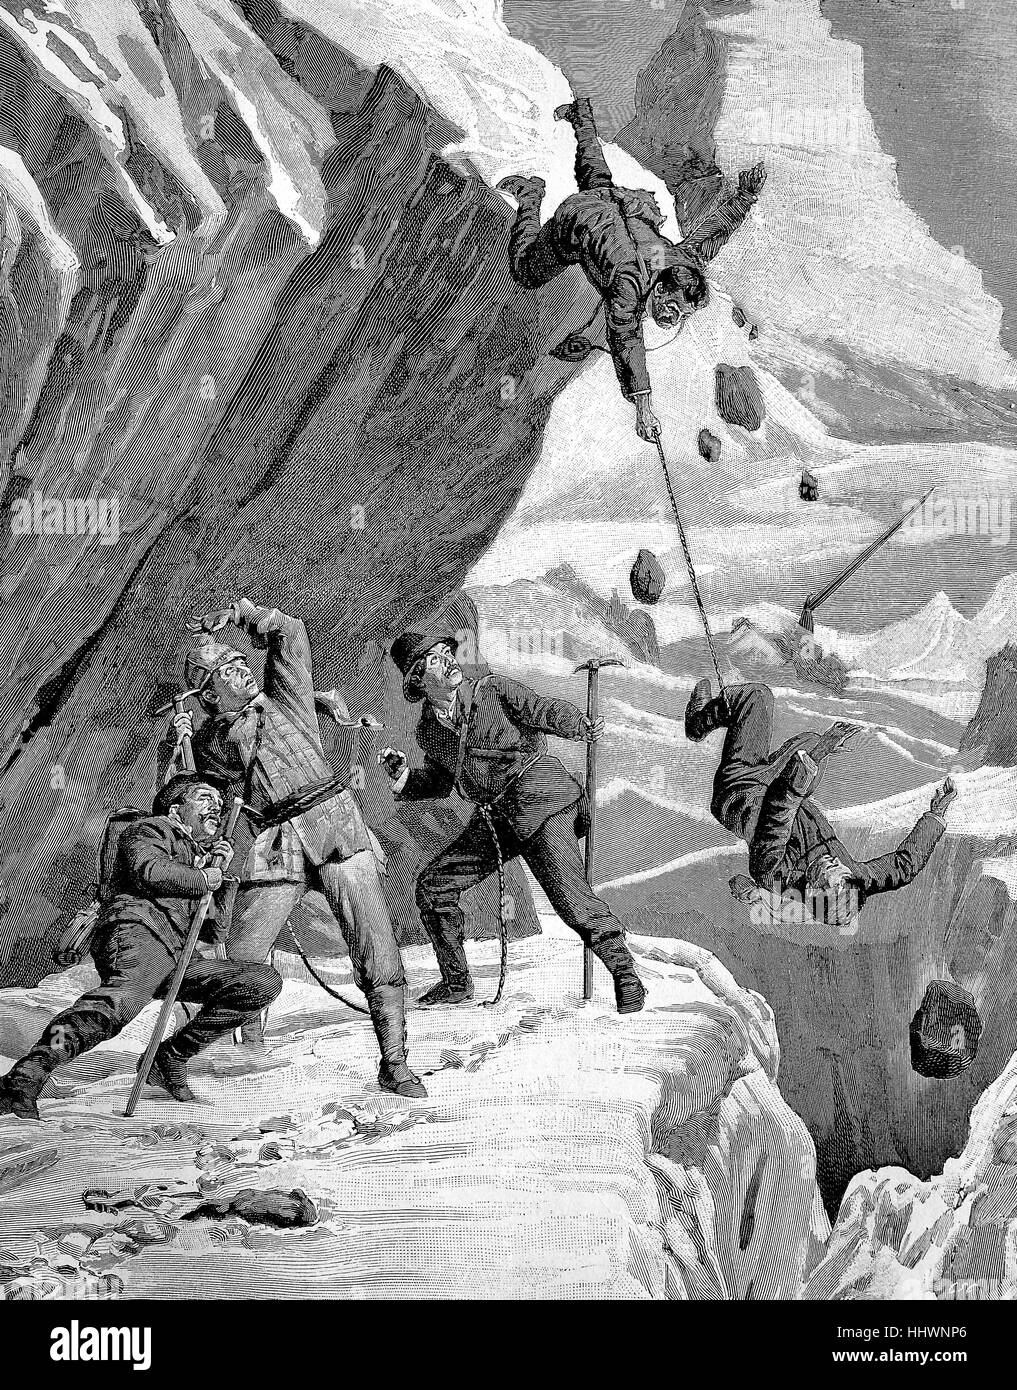 Mountaineers crash, disaster at the Matterhorn, Switzerland, historical image or illustration, published 1890, digital - Stock Image